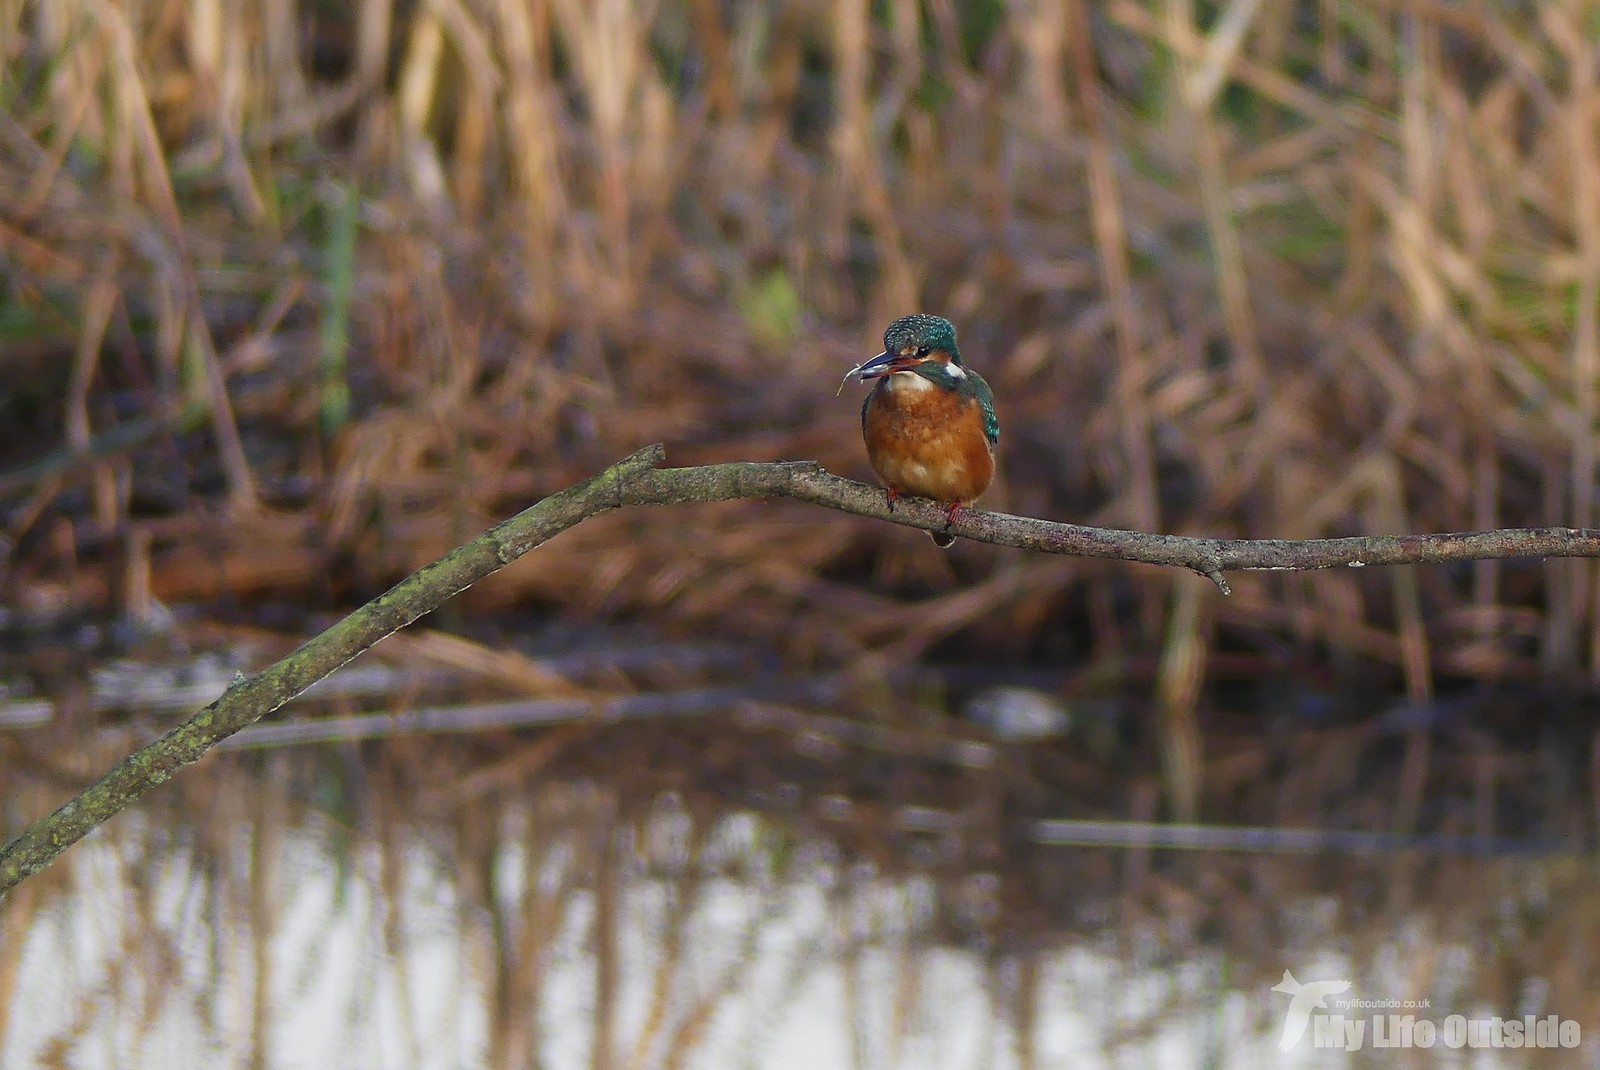 P1220651 - Kingfisher, Seaton Wetlands